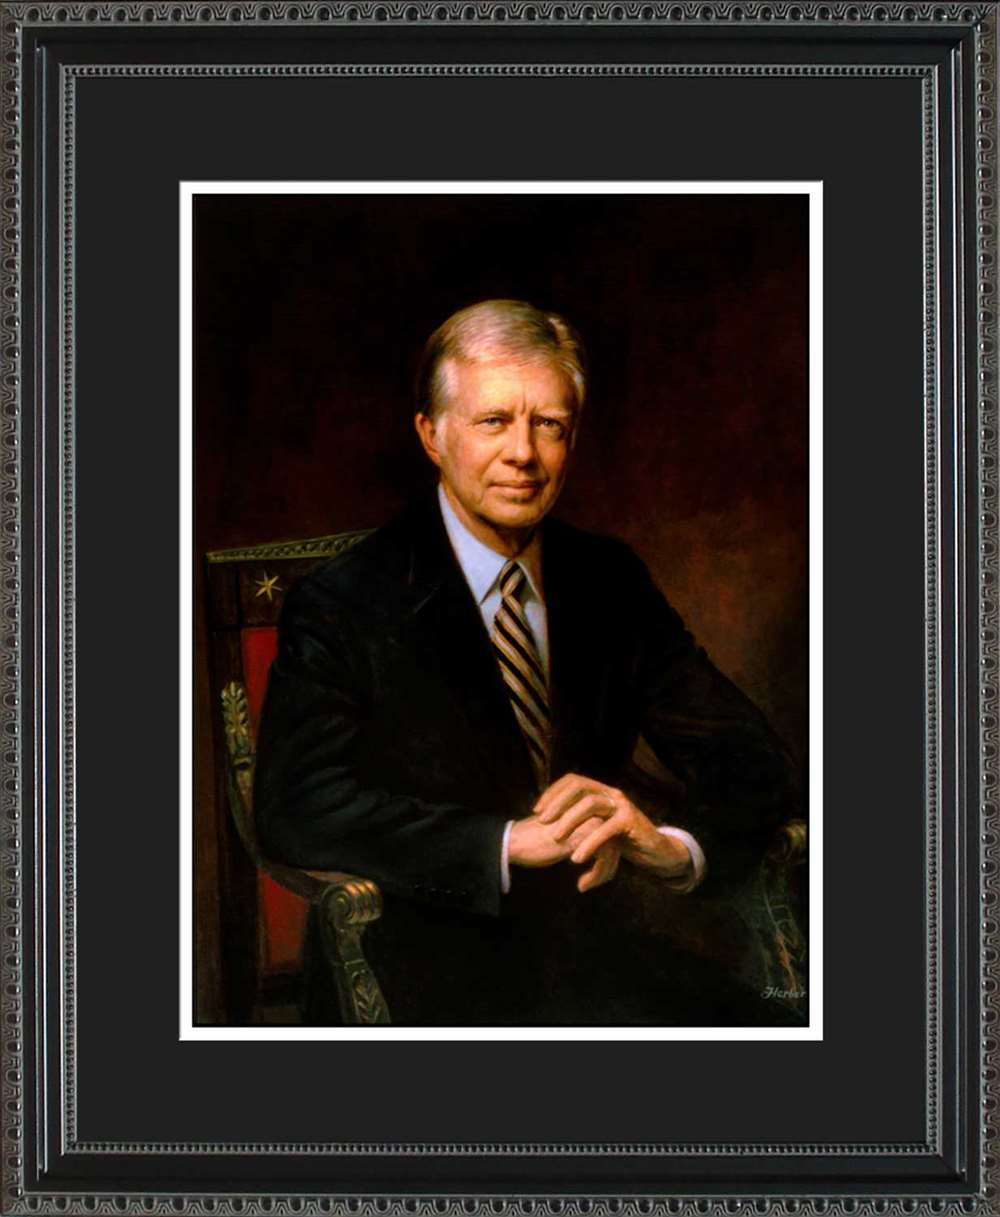 Jimmy Carter Official President Portrait, 16x20